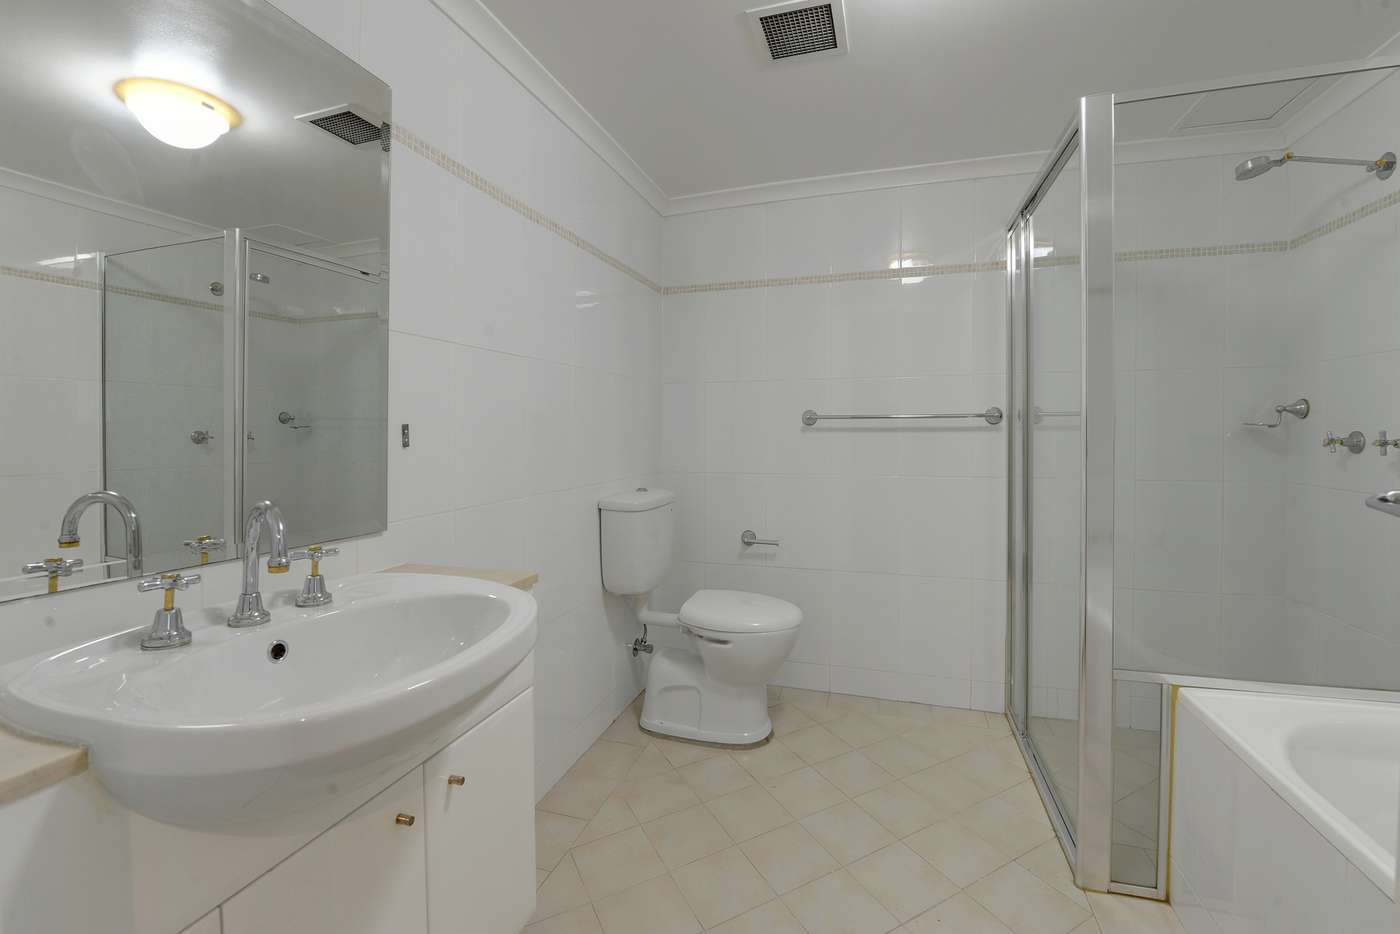 Sixth view of Homely apartment listing, 12/2 Pound Road, Hornsby NSW 2077